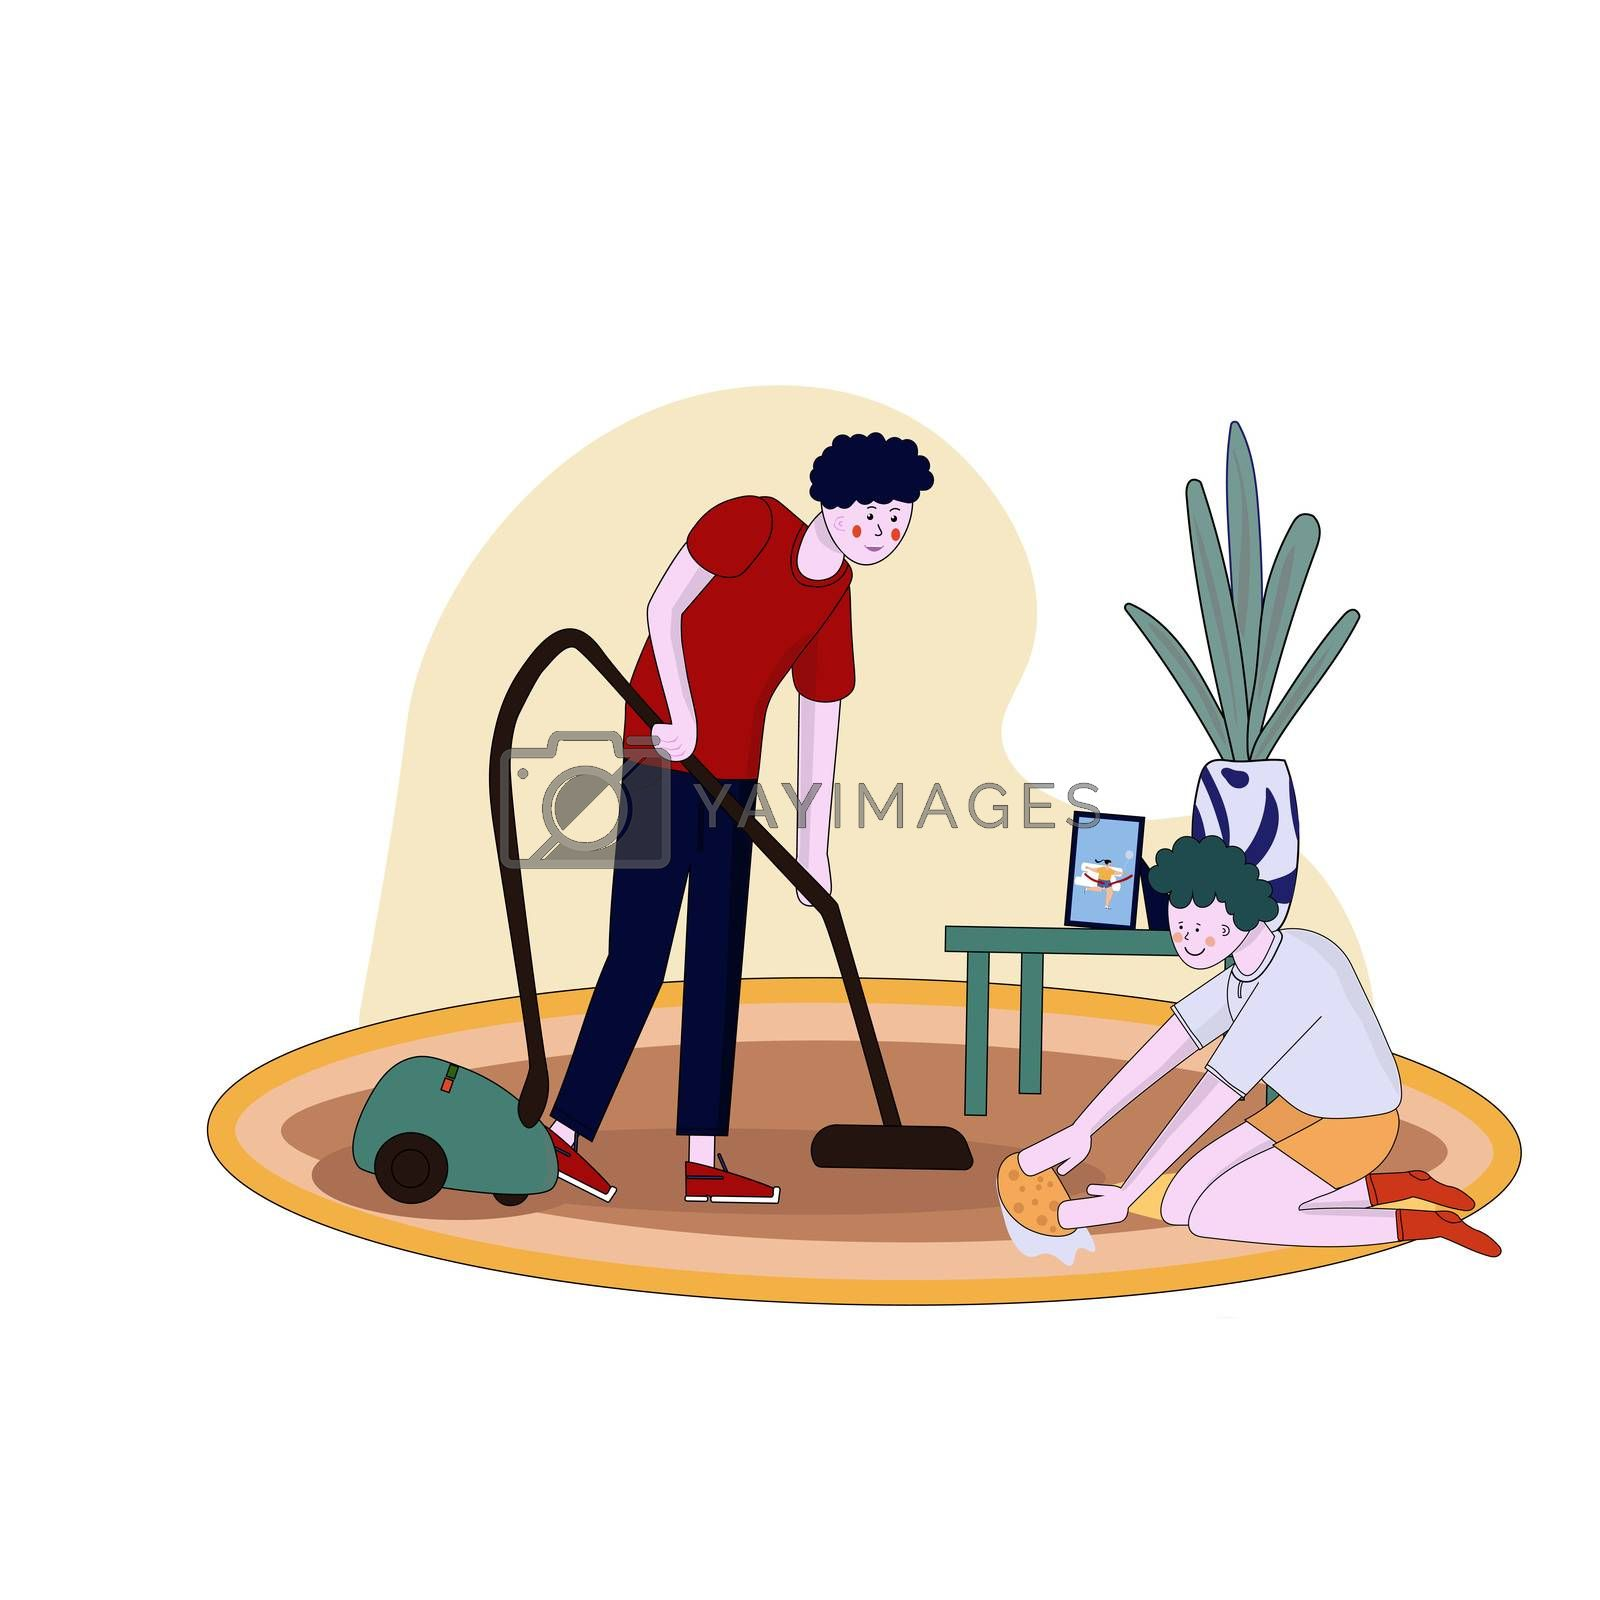 Father and son clean flat vacuuming with vacuumer cartoon illustration